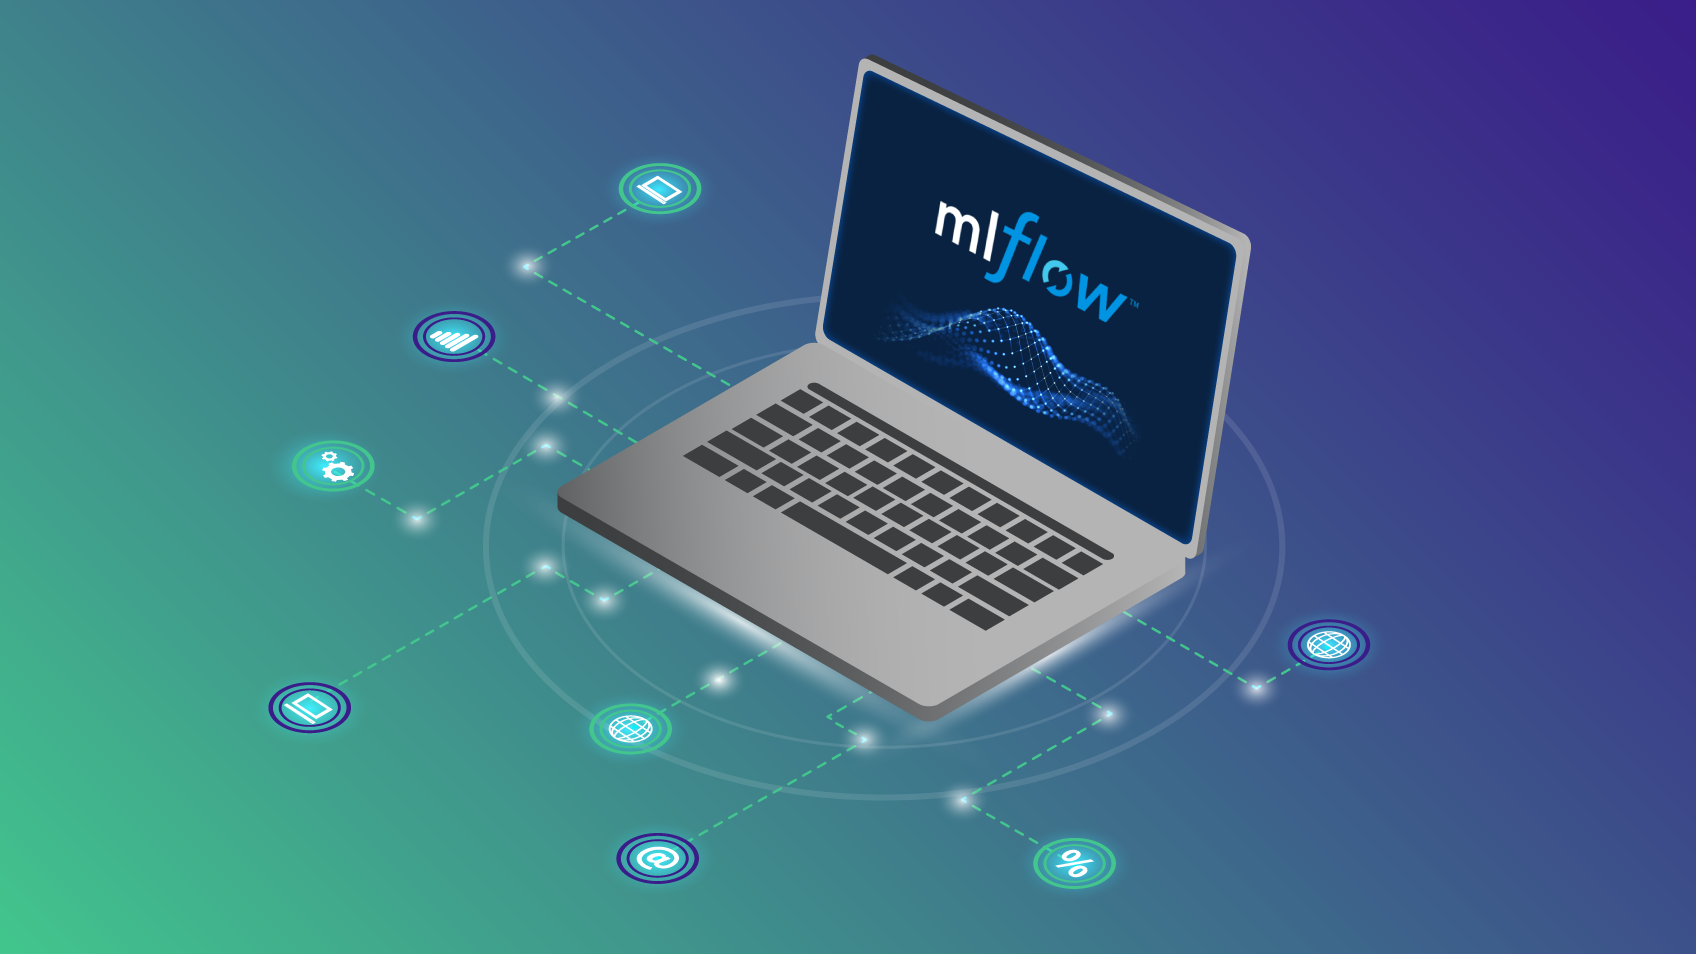 Five everyday problems MLFlow solves